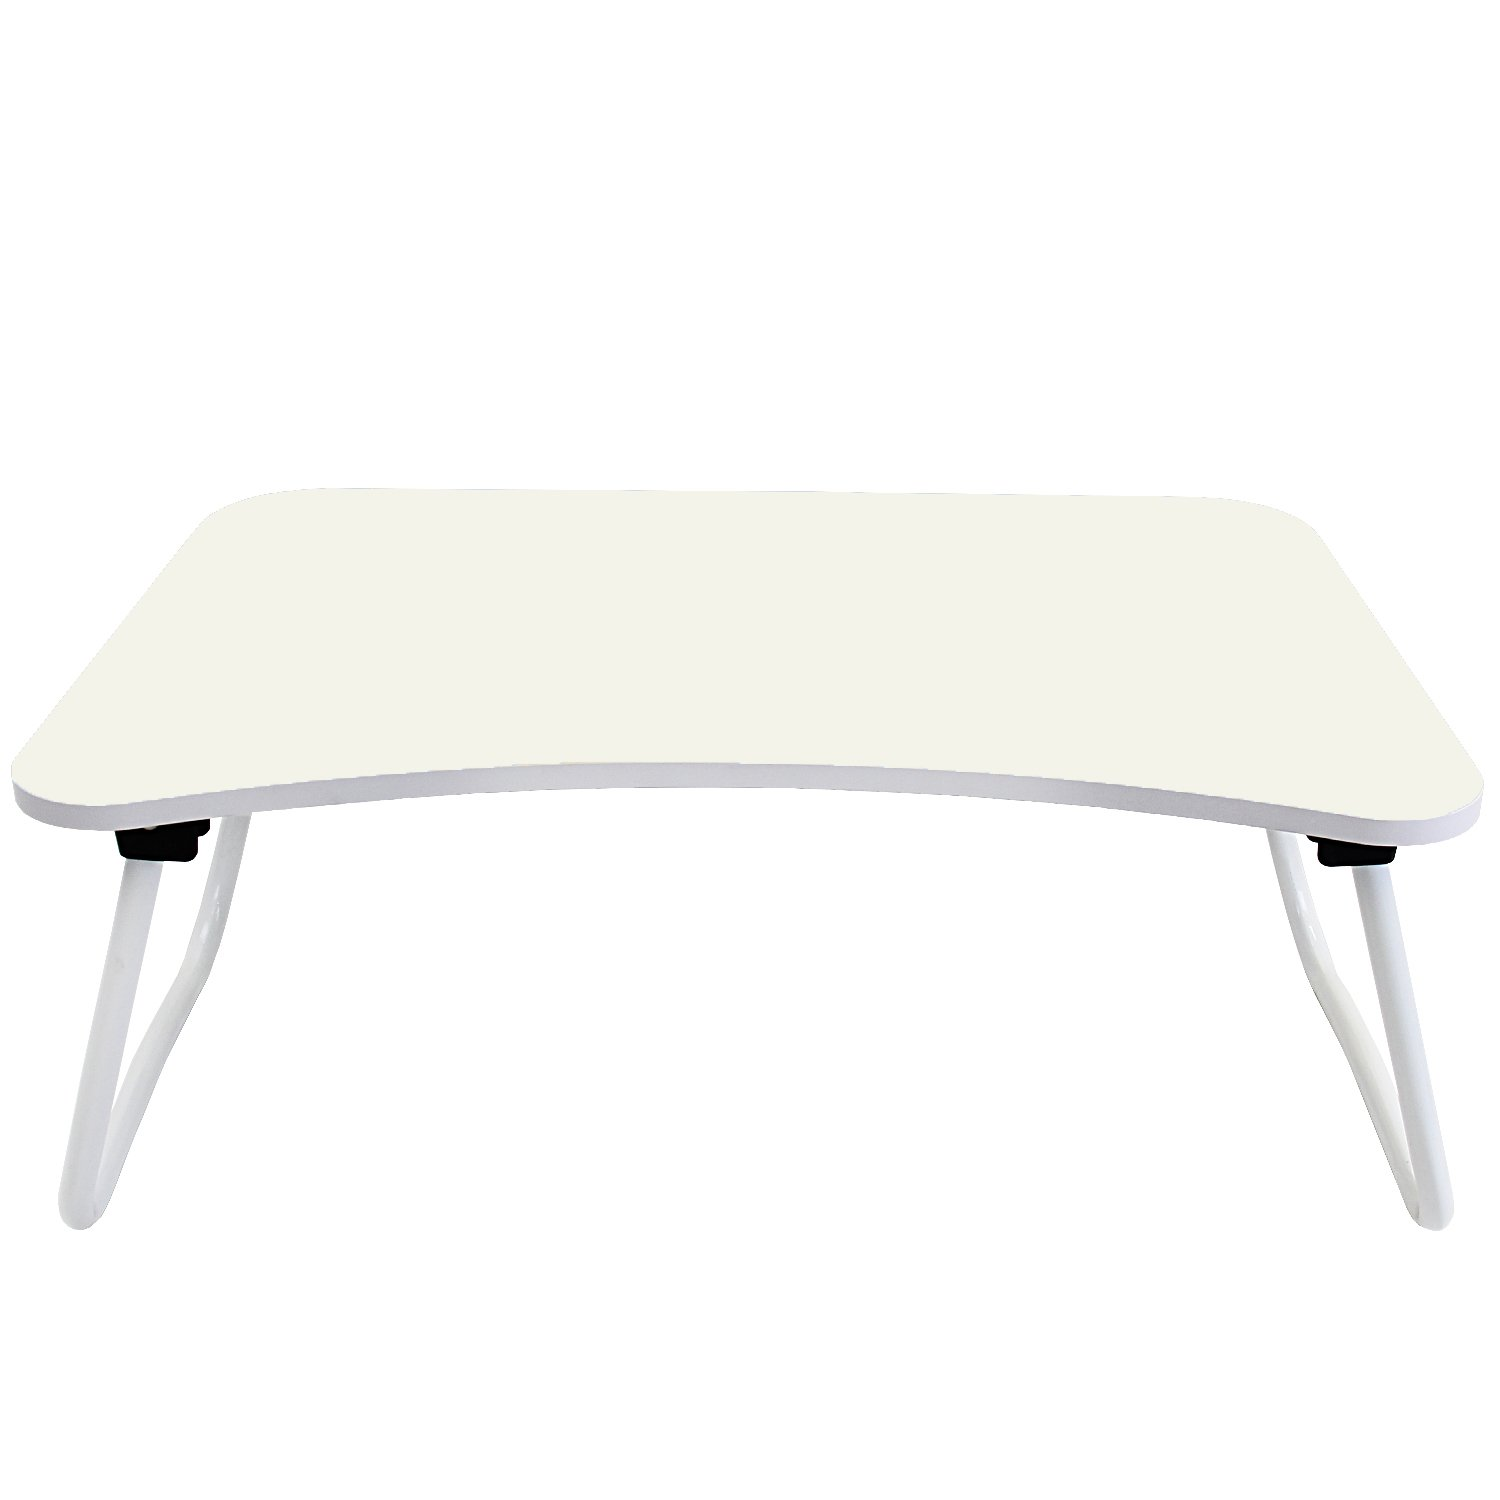 DL furniture - Portable Lap Desk With Foldable Bottom, W Shape Legs Perfect For Station Your Laptop Tablet on Your Bed   White